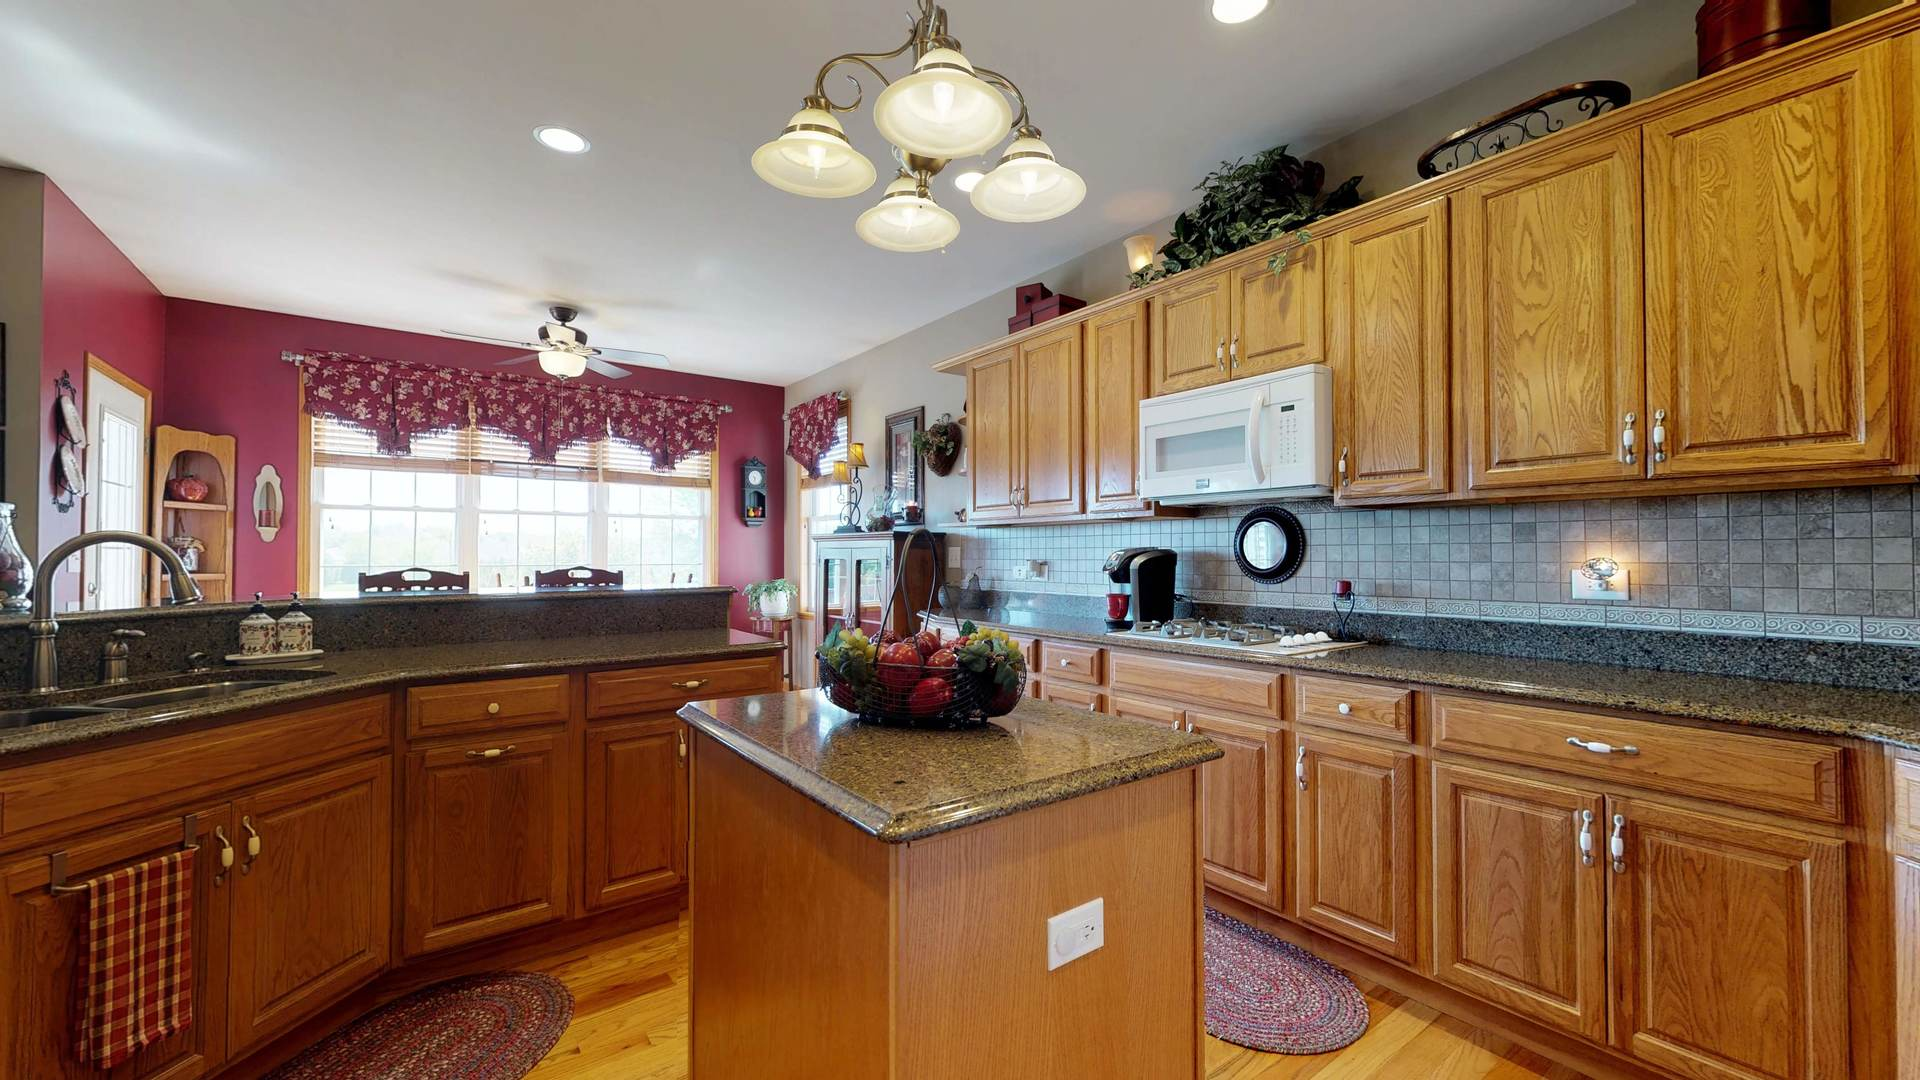 twin oaks singles For sale - 34 twin oaks terrace, milford, ct - $245,000 view details, map and photos of this single family property with 3 bedrooms and 1 total baths mls# 170083668.